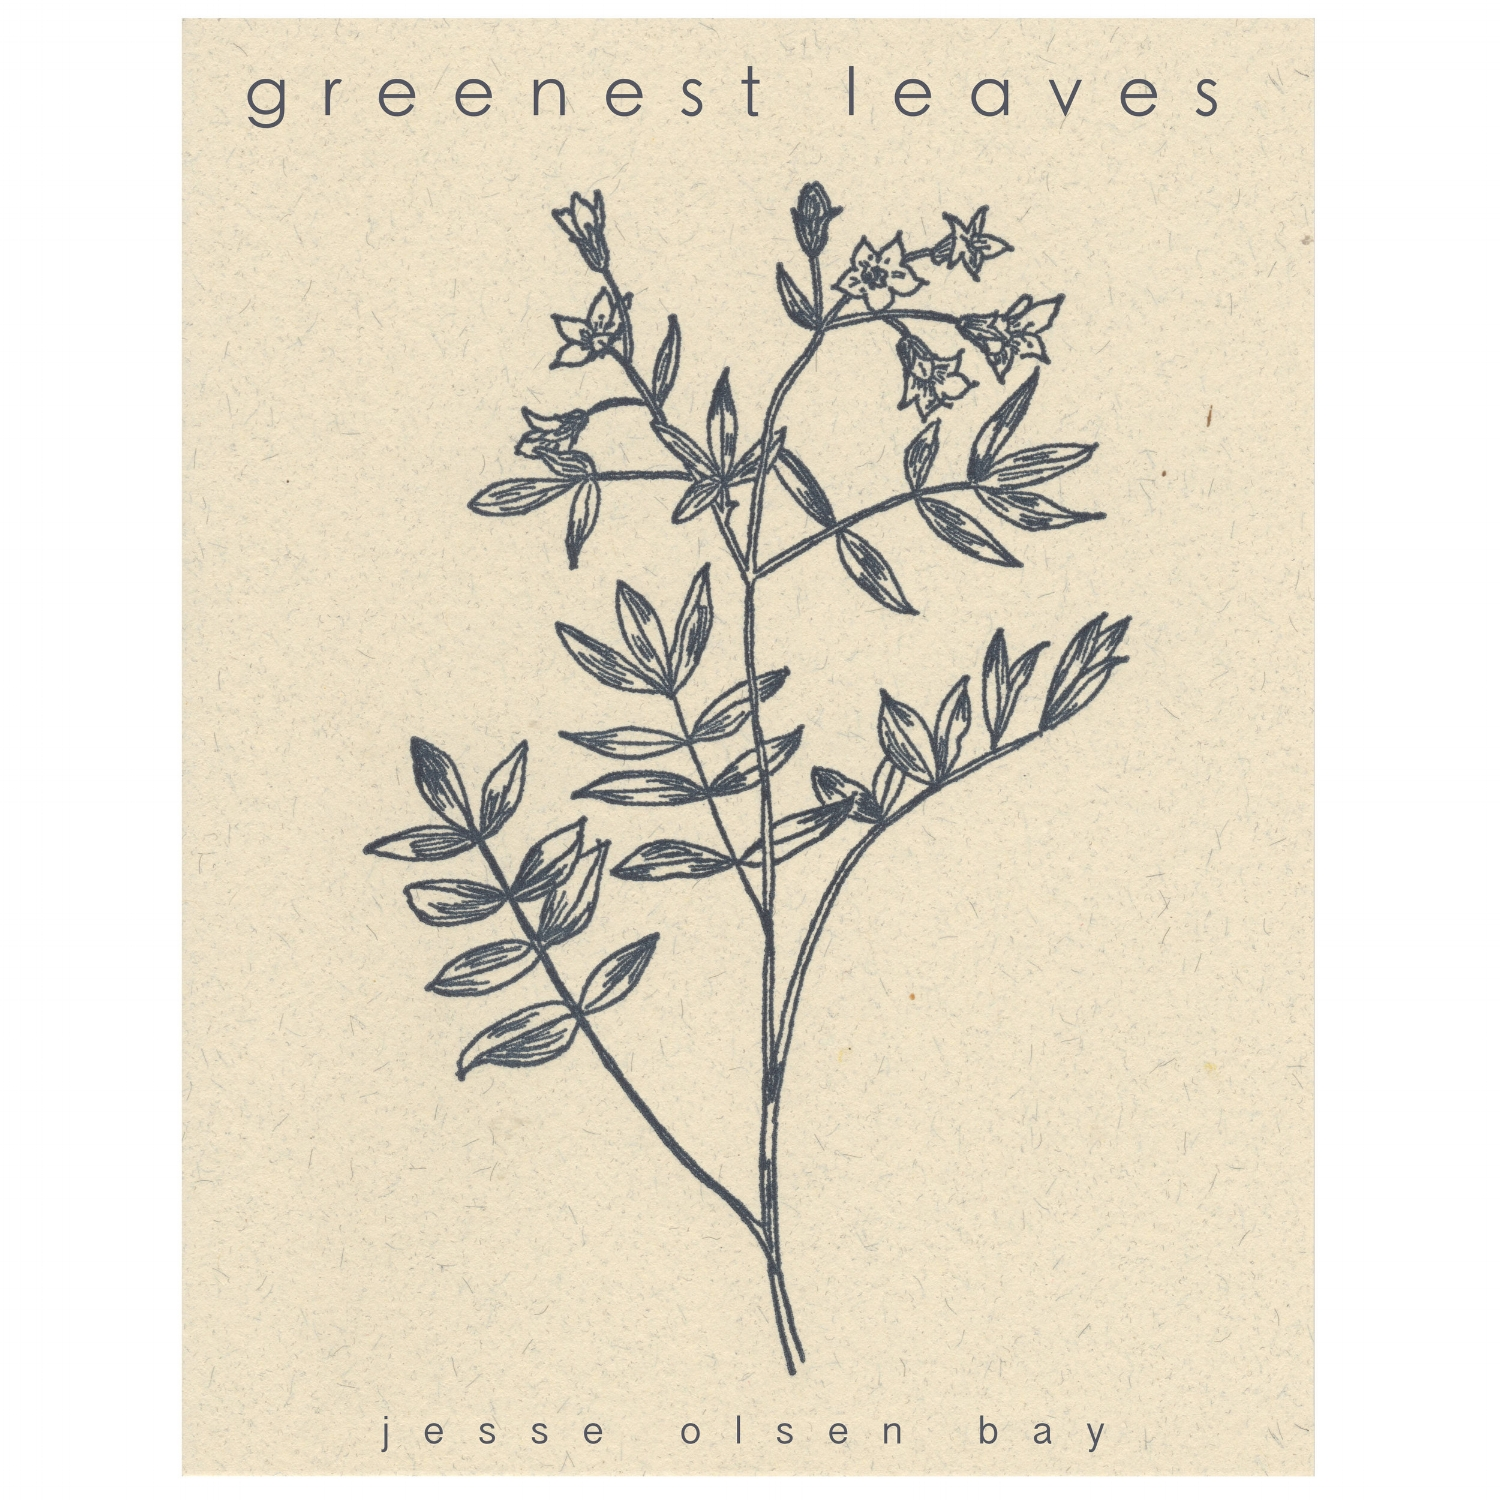 greenest leaves (2017)   Nine songs, written and slowly shaped over six years, and recorded in a single night in our old barn. Quiet, intimate songs, just a voice, a guitar, and a little help from the frogs and crickets. They are ruminations on life as a father, a partner, seeking beauty and solace in dreams, in the trees, in love, in grief, in the everyday.